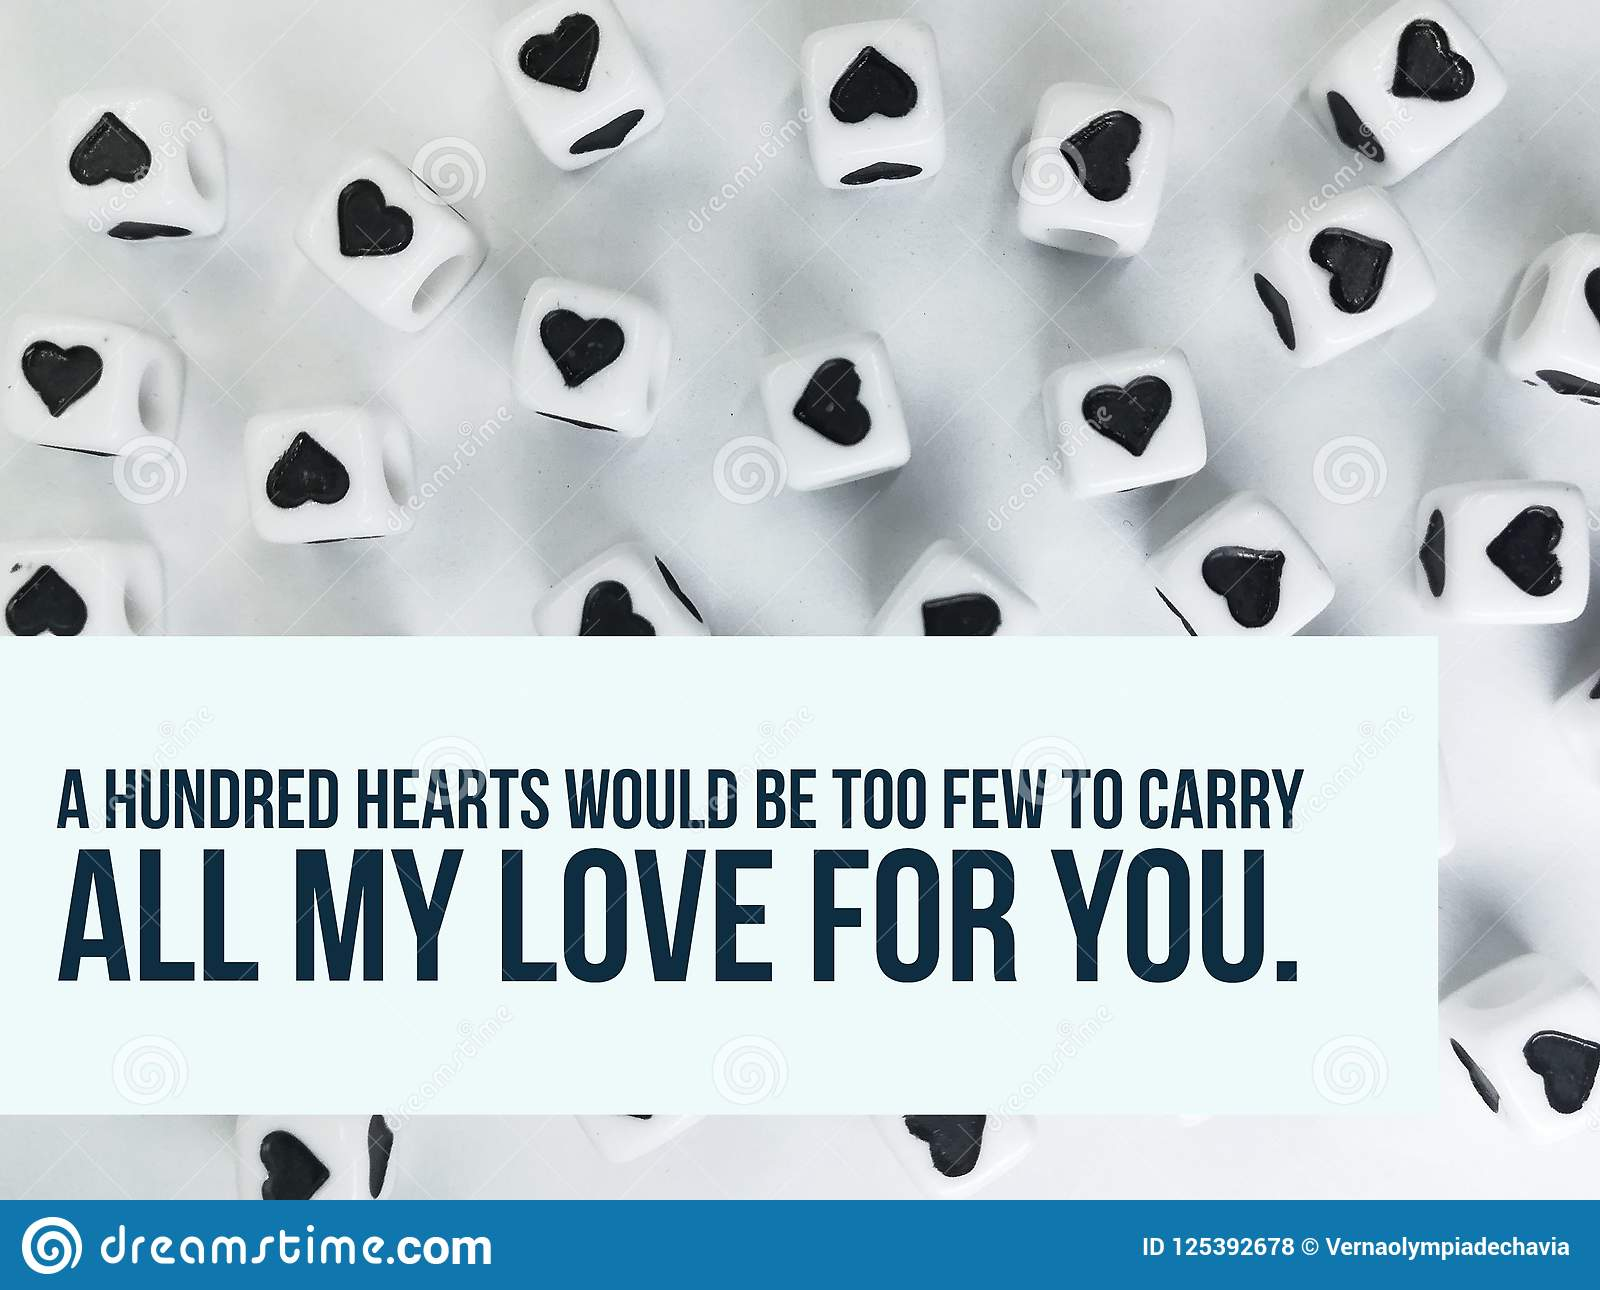 A hundred hearts would be too few to carry all my love for you quote